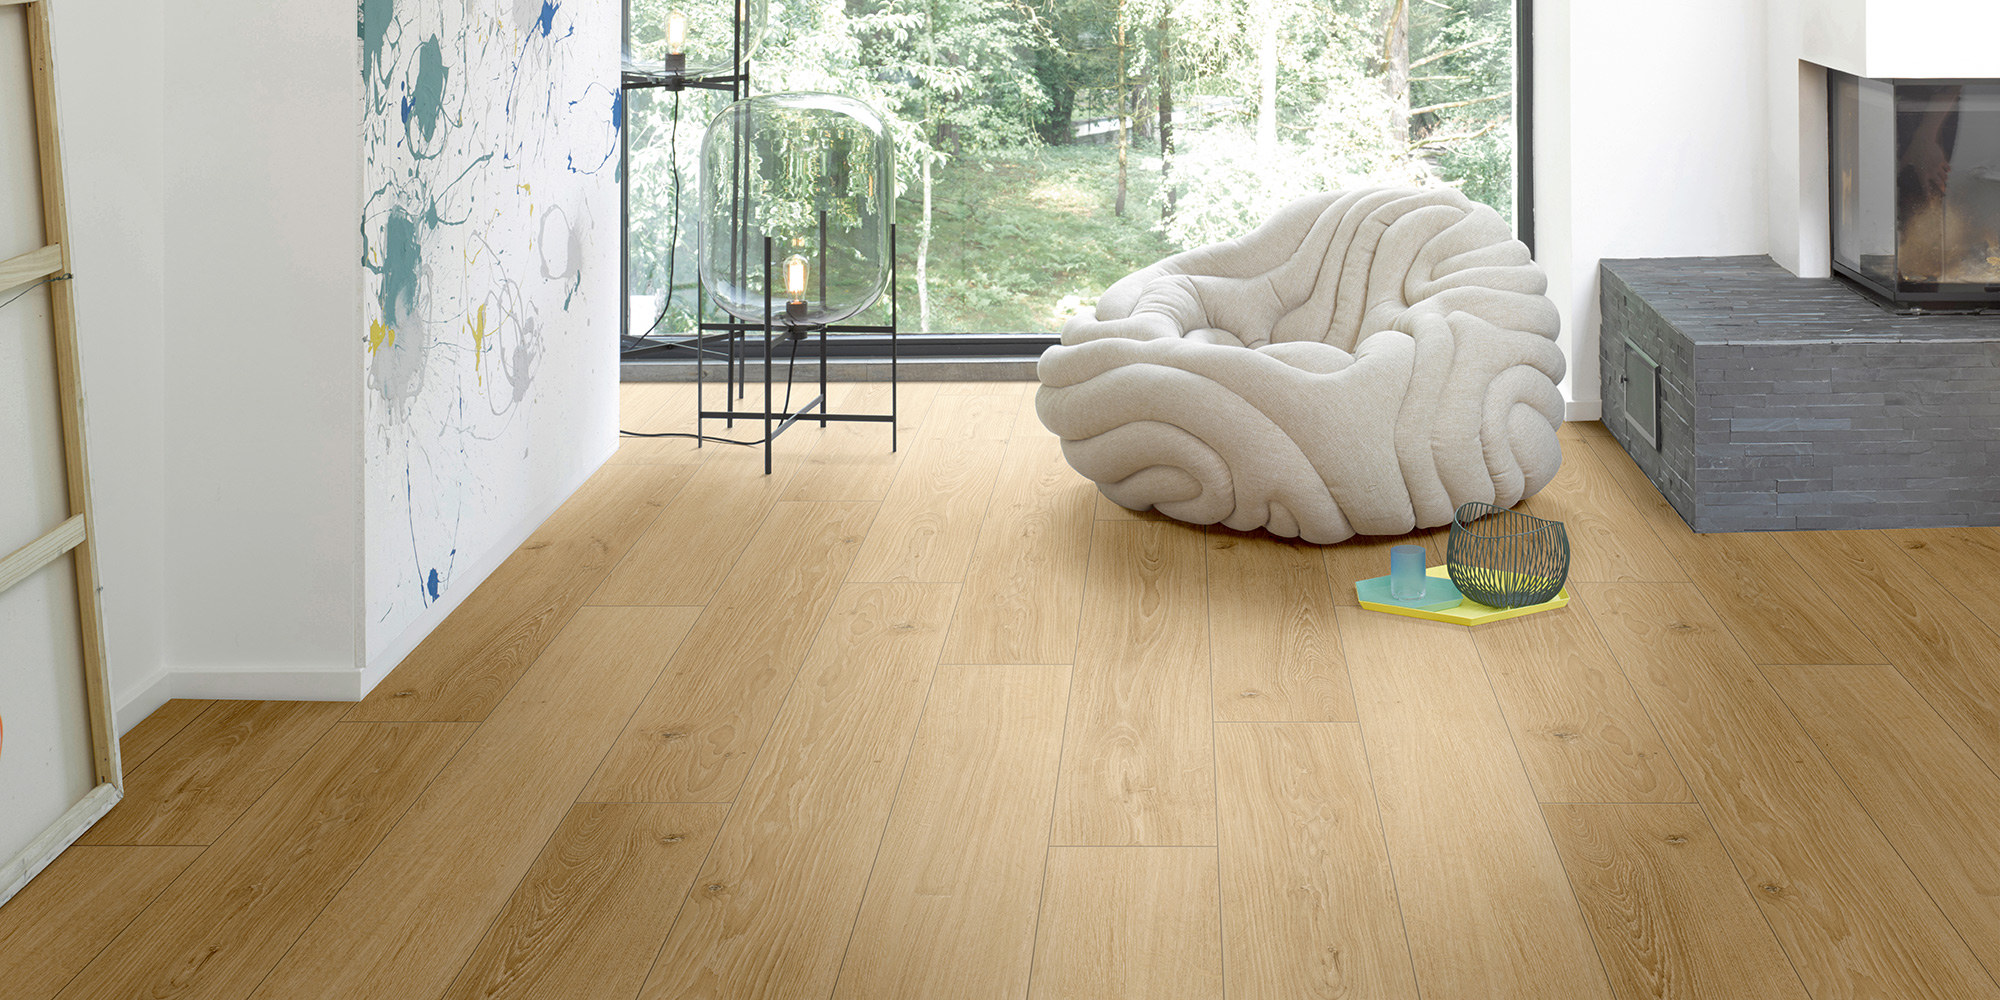 Parador Classic 1050. 8mm laminate flooring with AC4 rating and class 32.